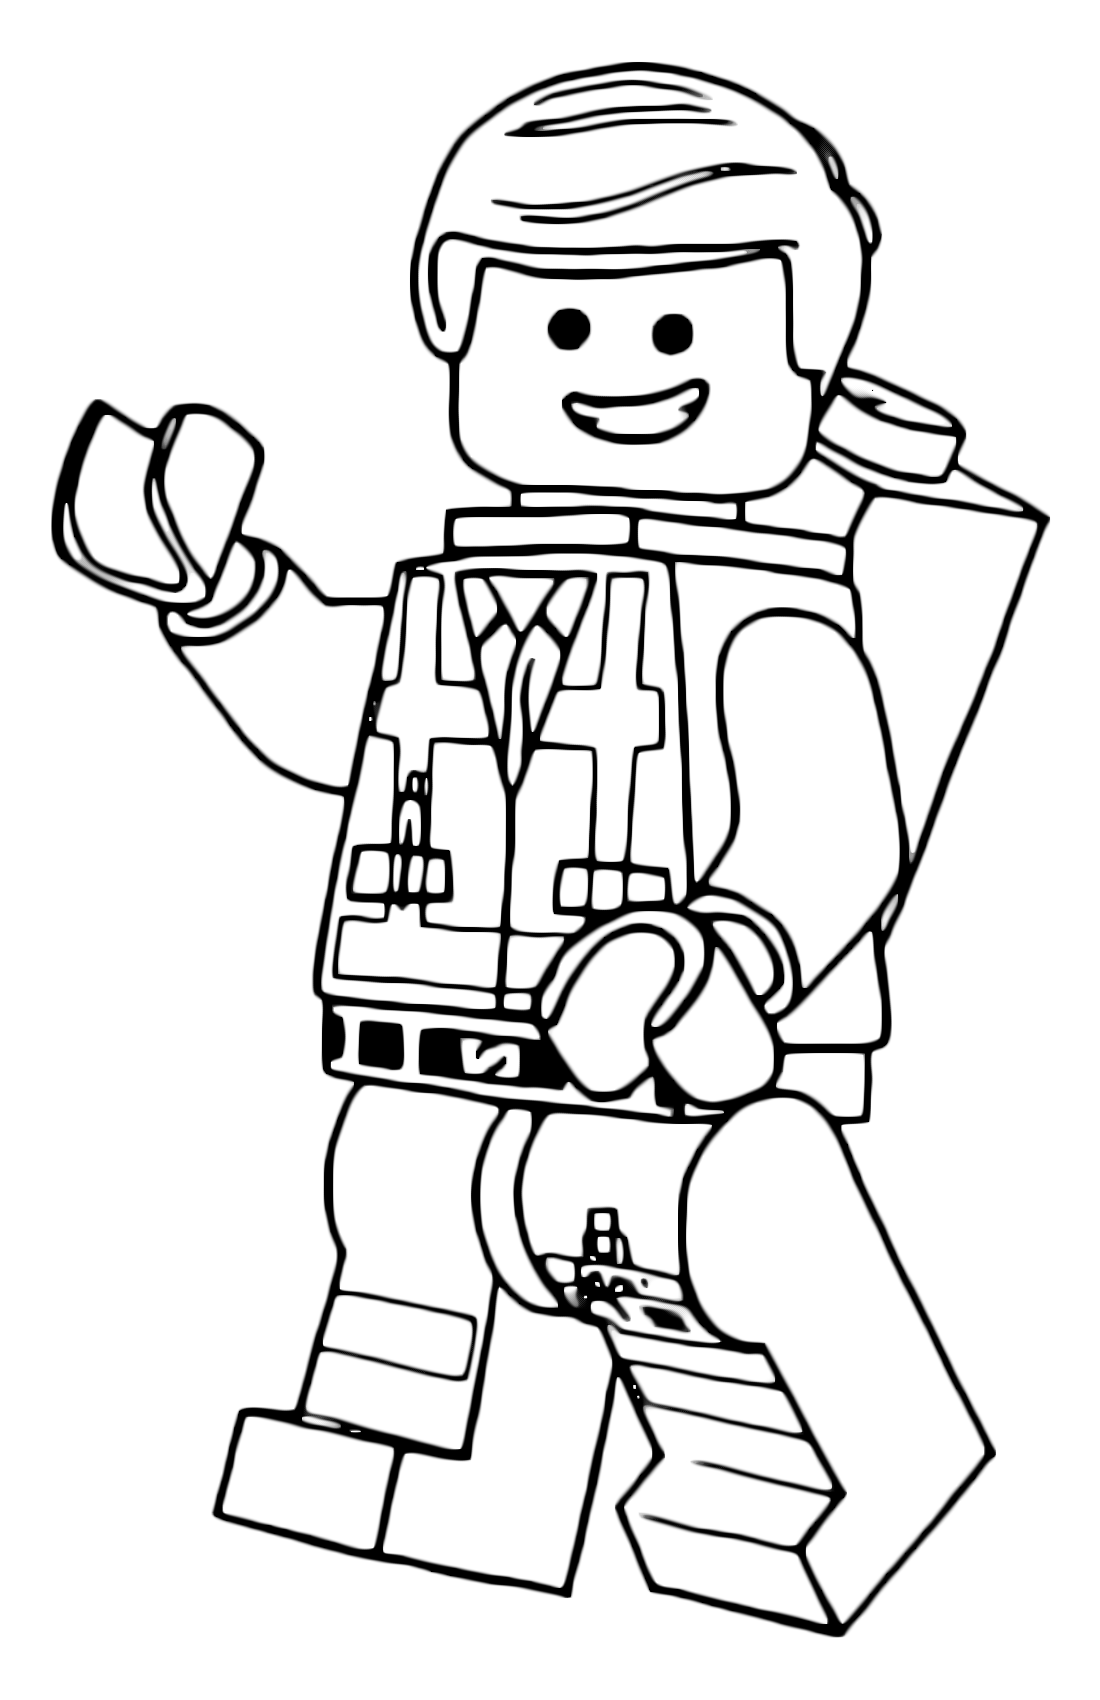 lego 2 coloring pages lego 2 printable coloring pages pages coloring lego 2